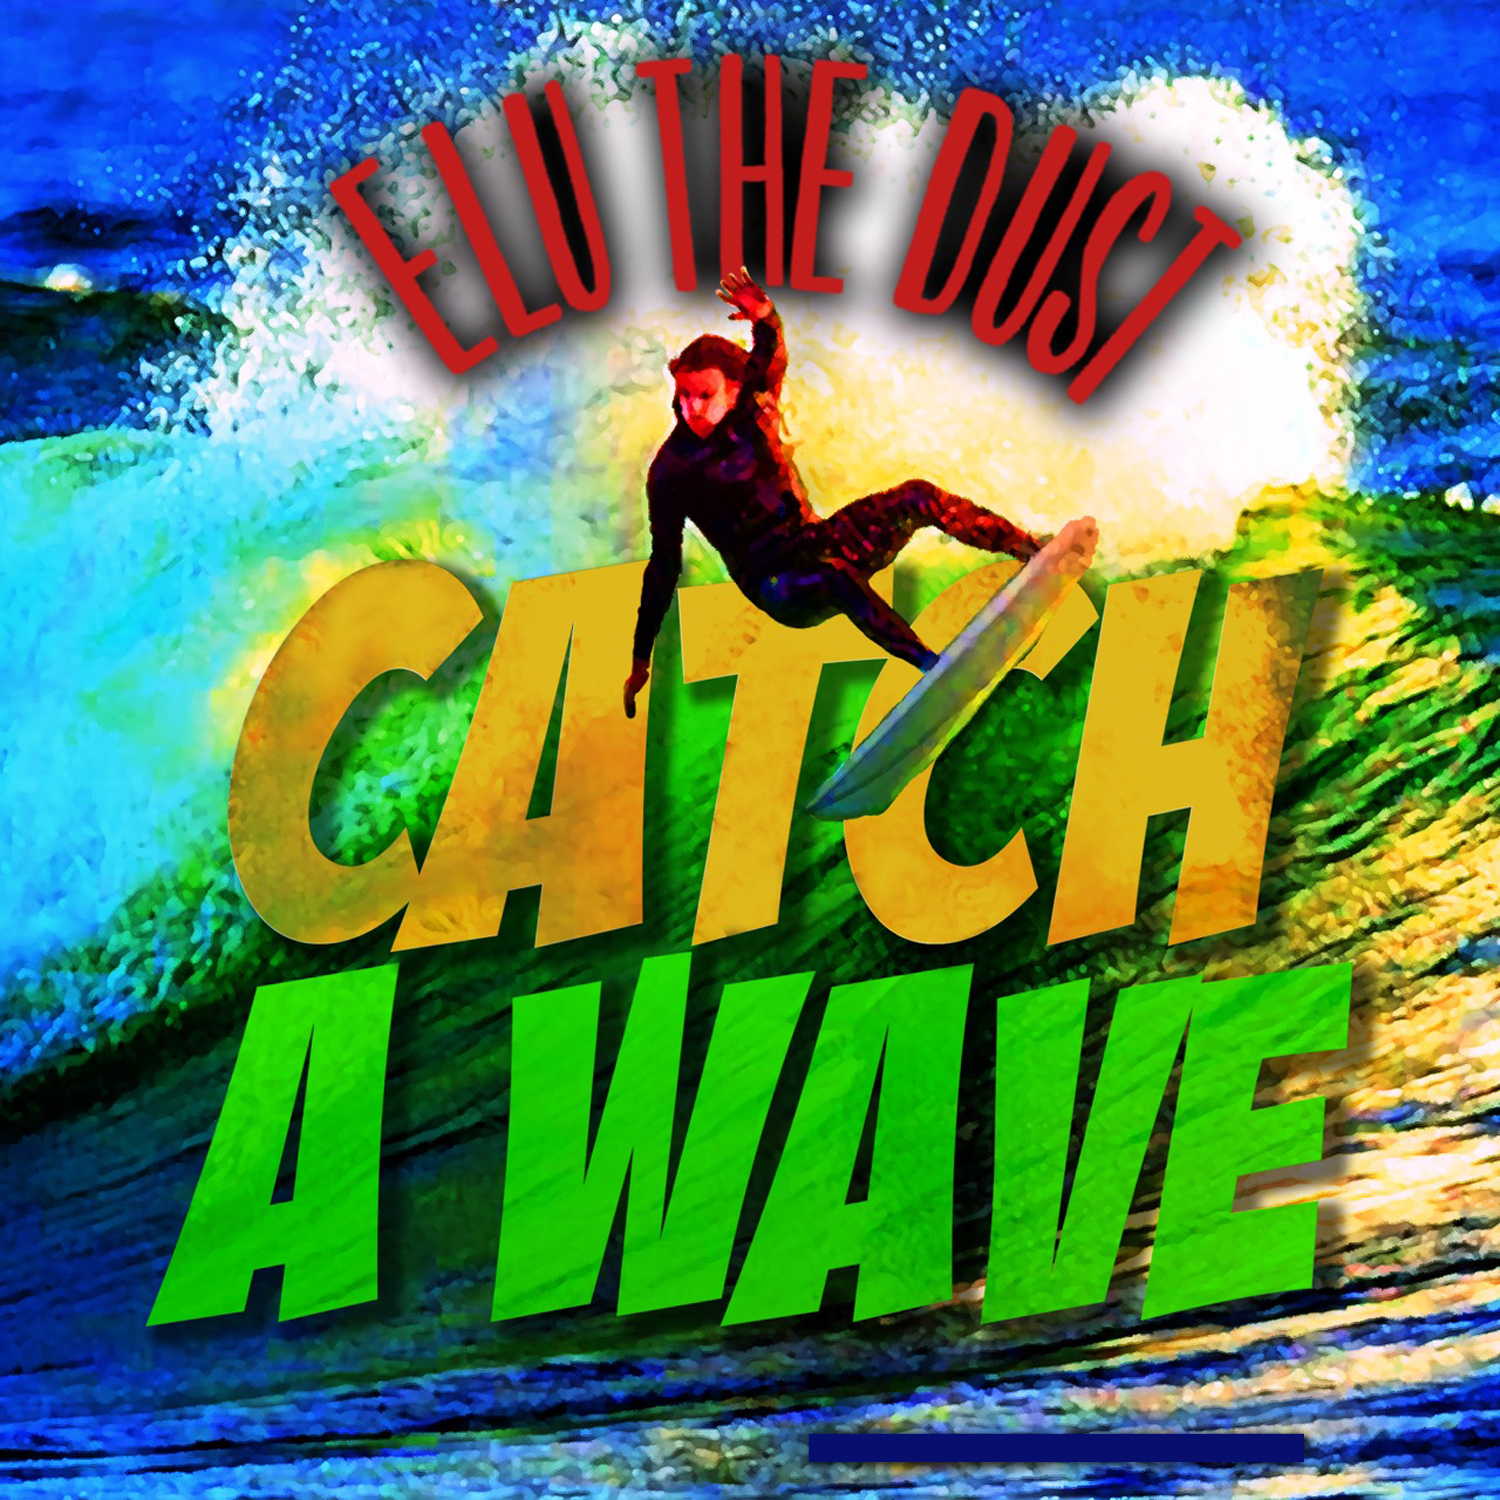 CATCH A WAVE EP COVER ART.jpg